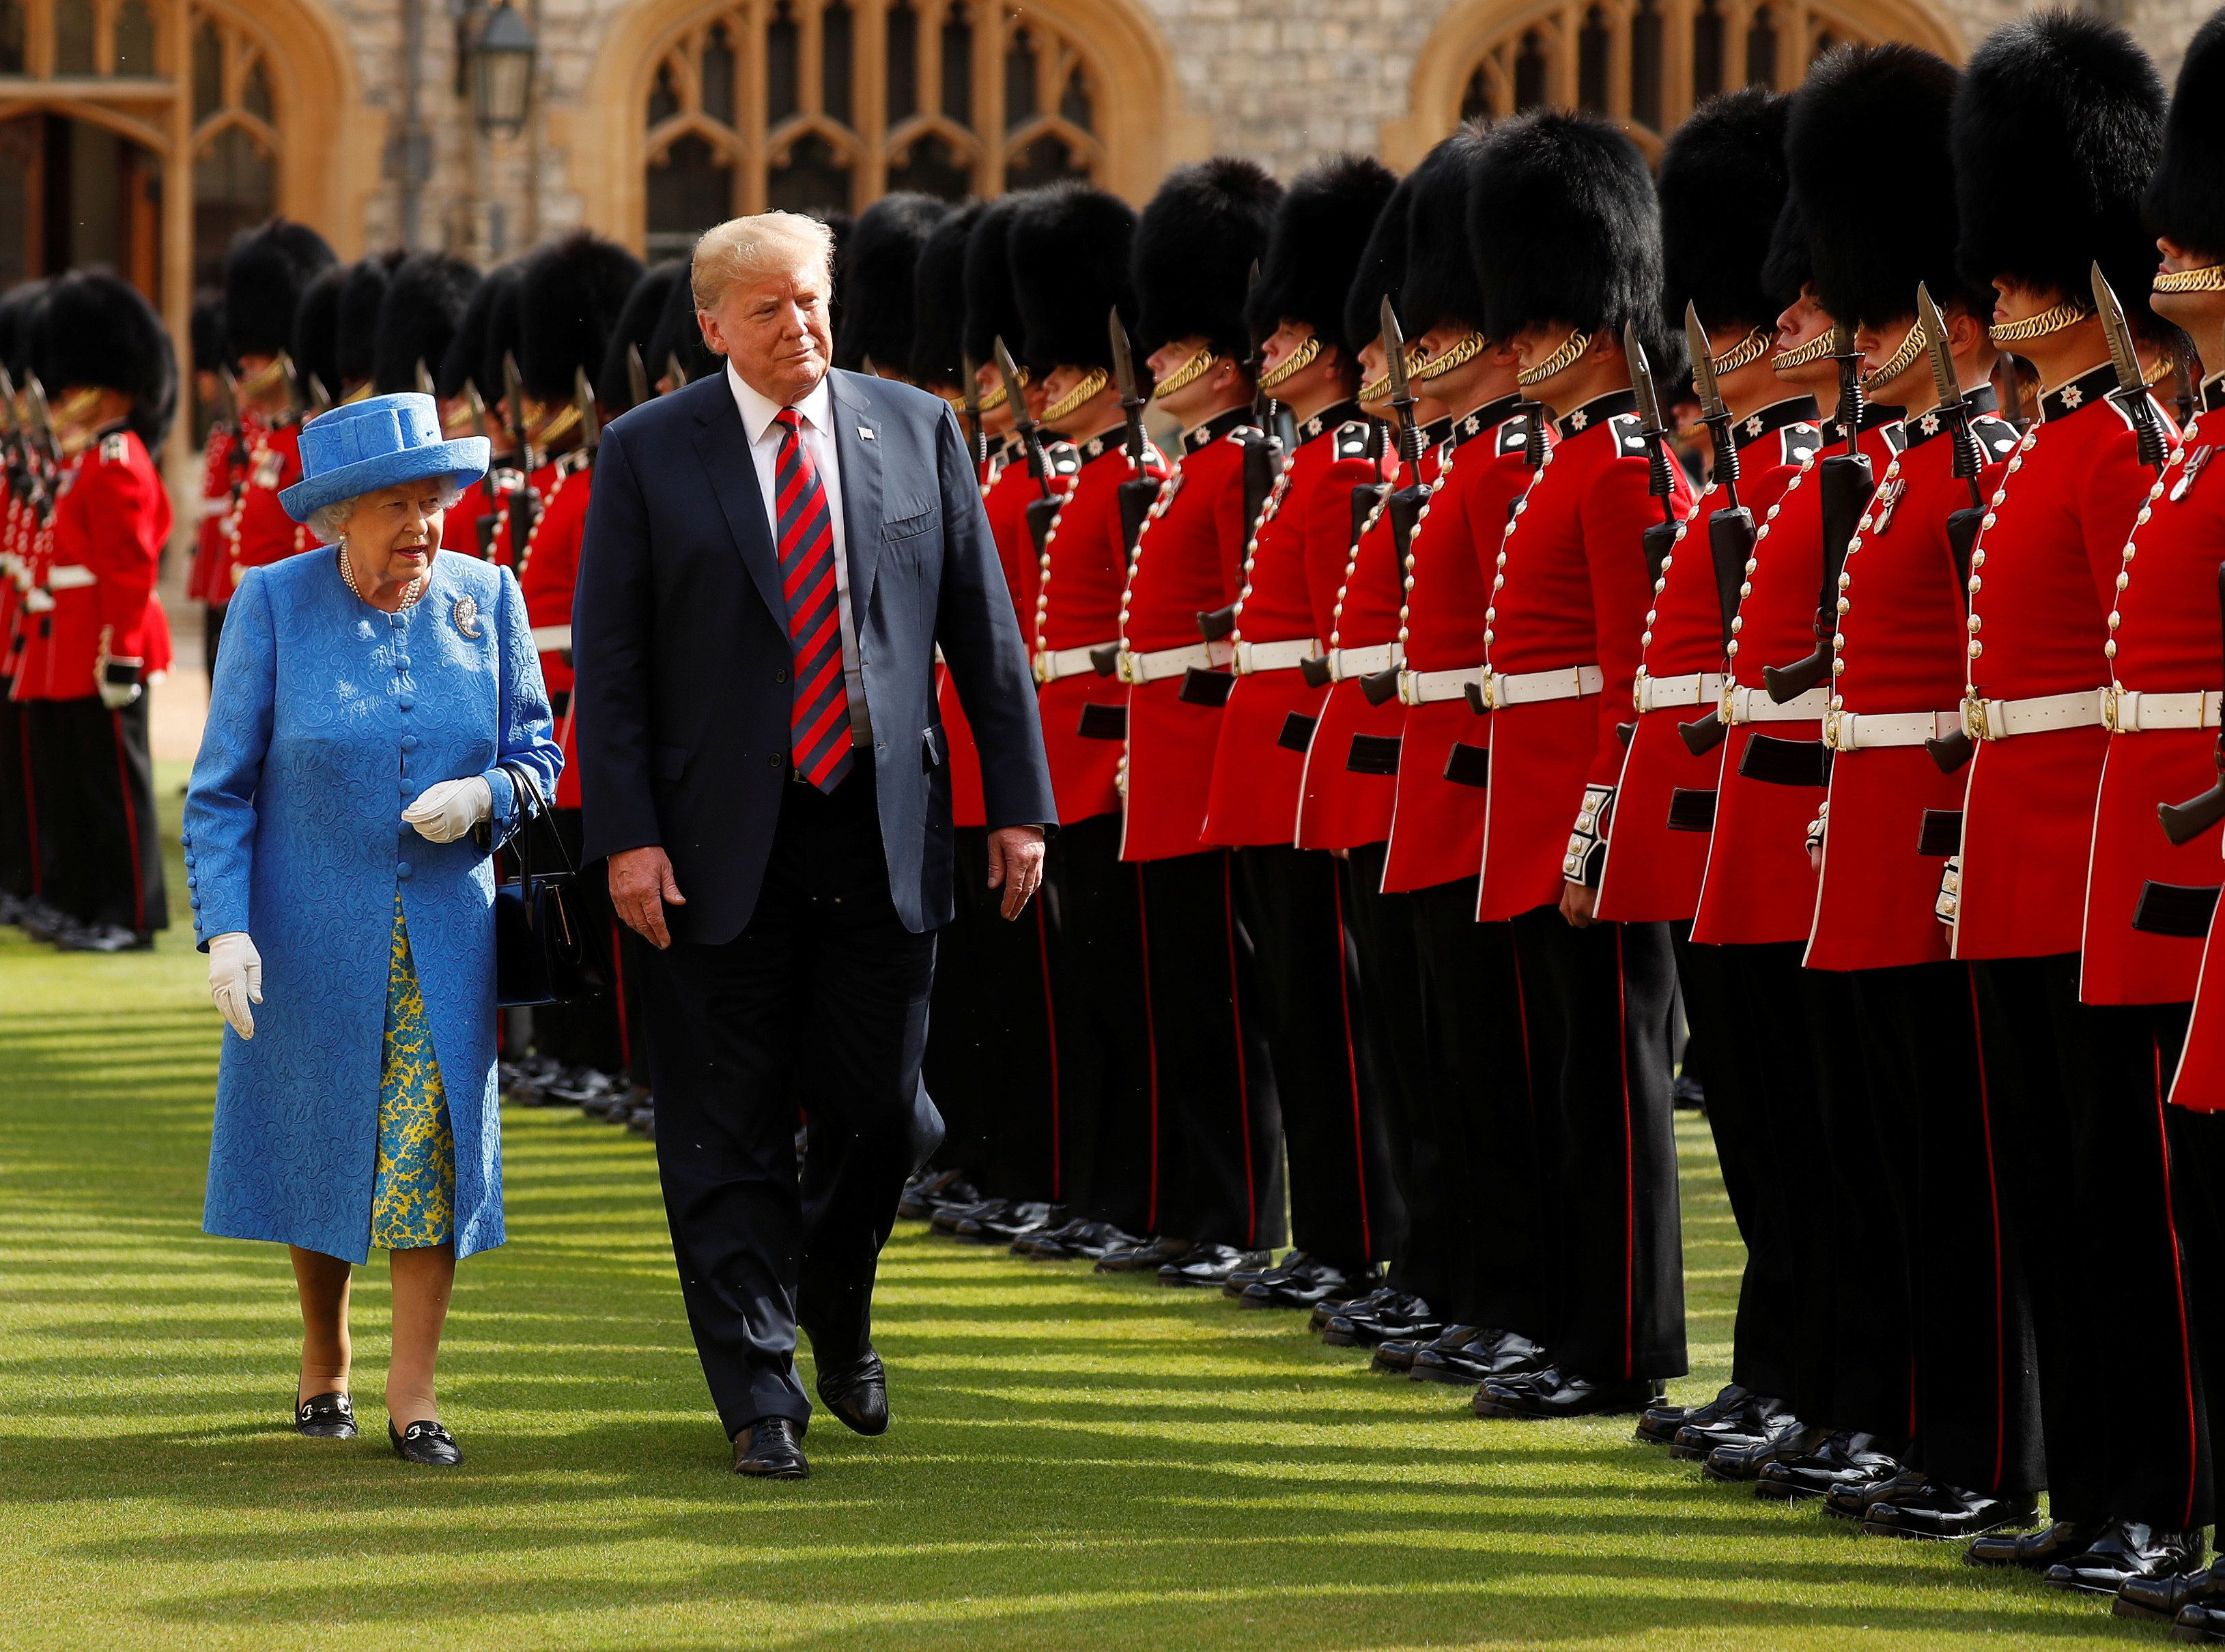 President Donald Trump and Britain's Queen Elizabeth inspect the Coldstream Guards during a visit Friday to Windsor Castle.